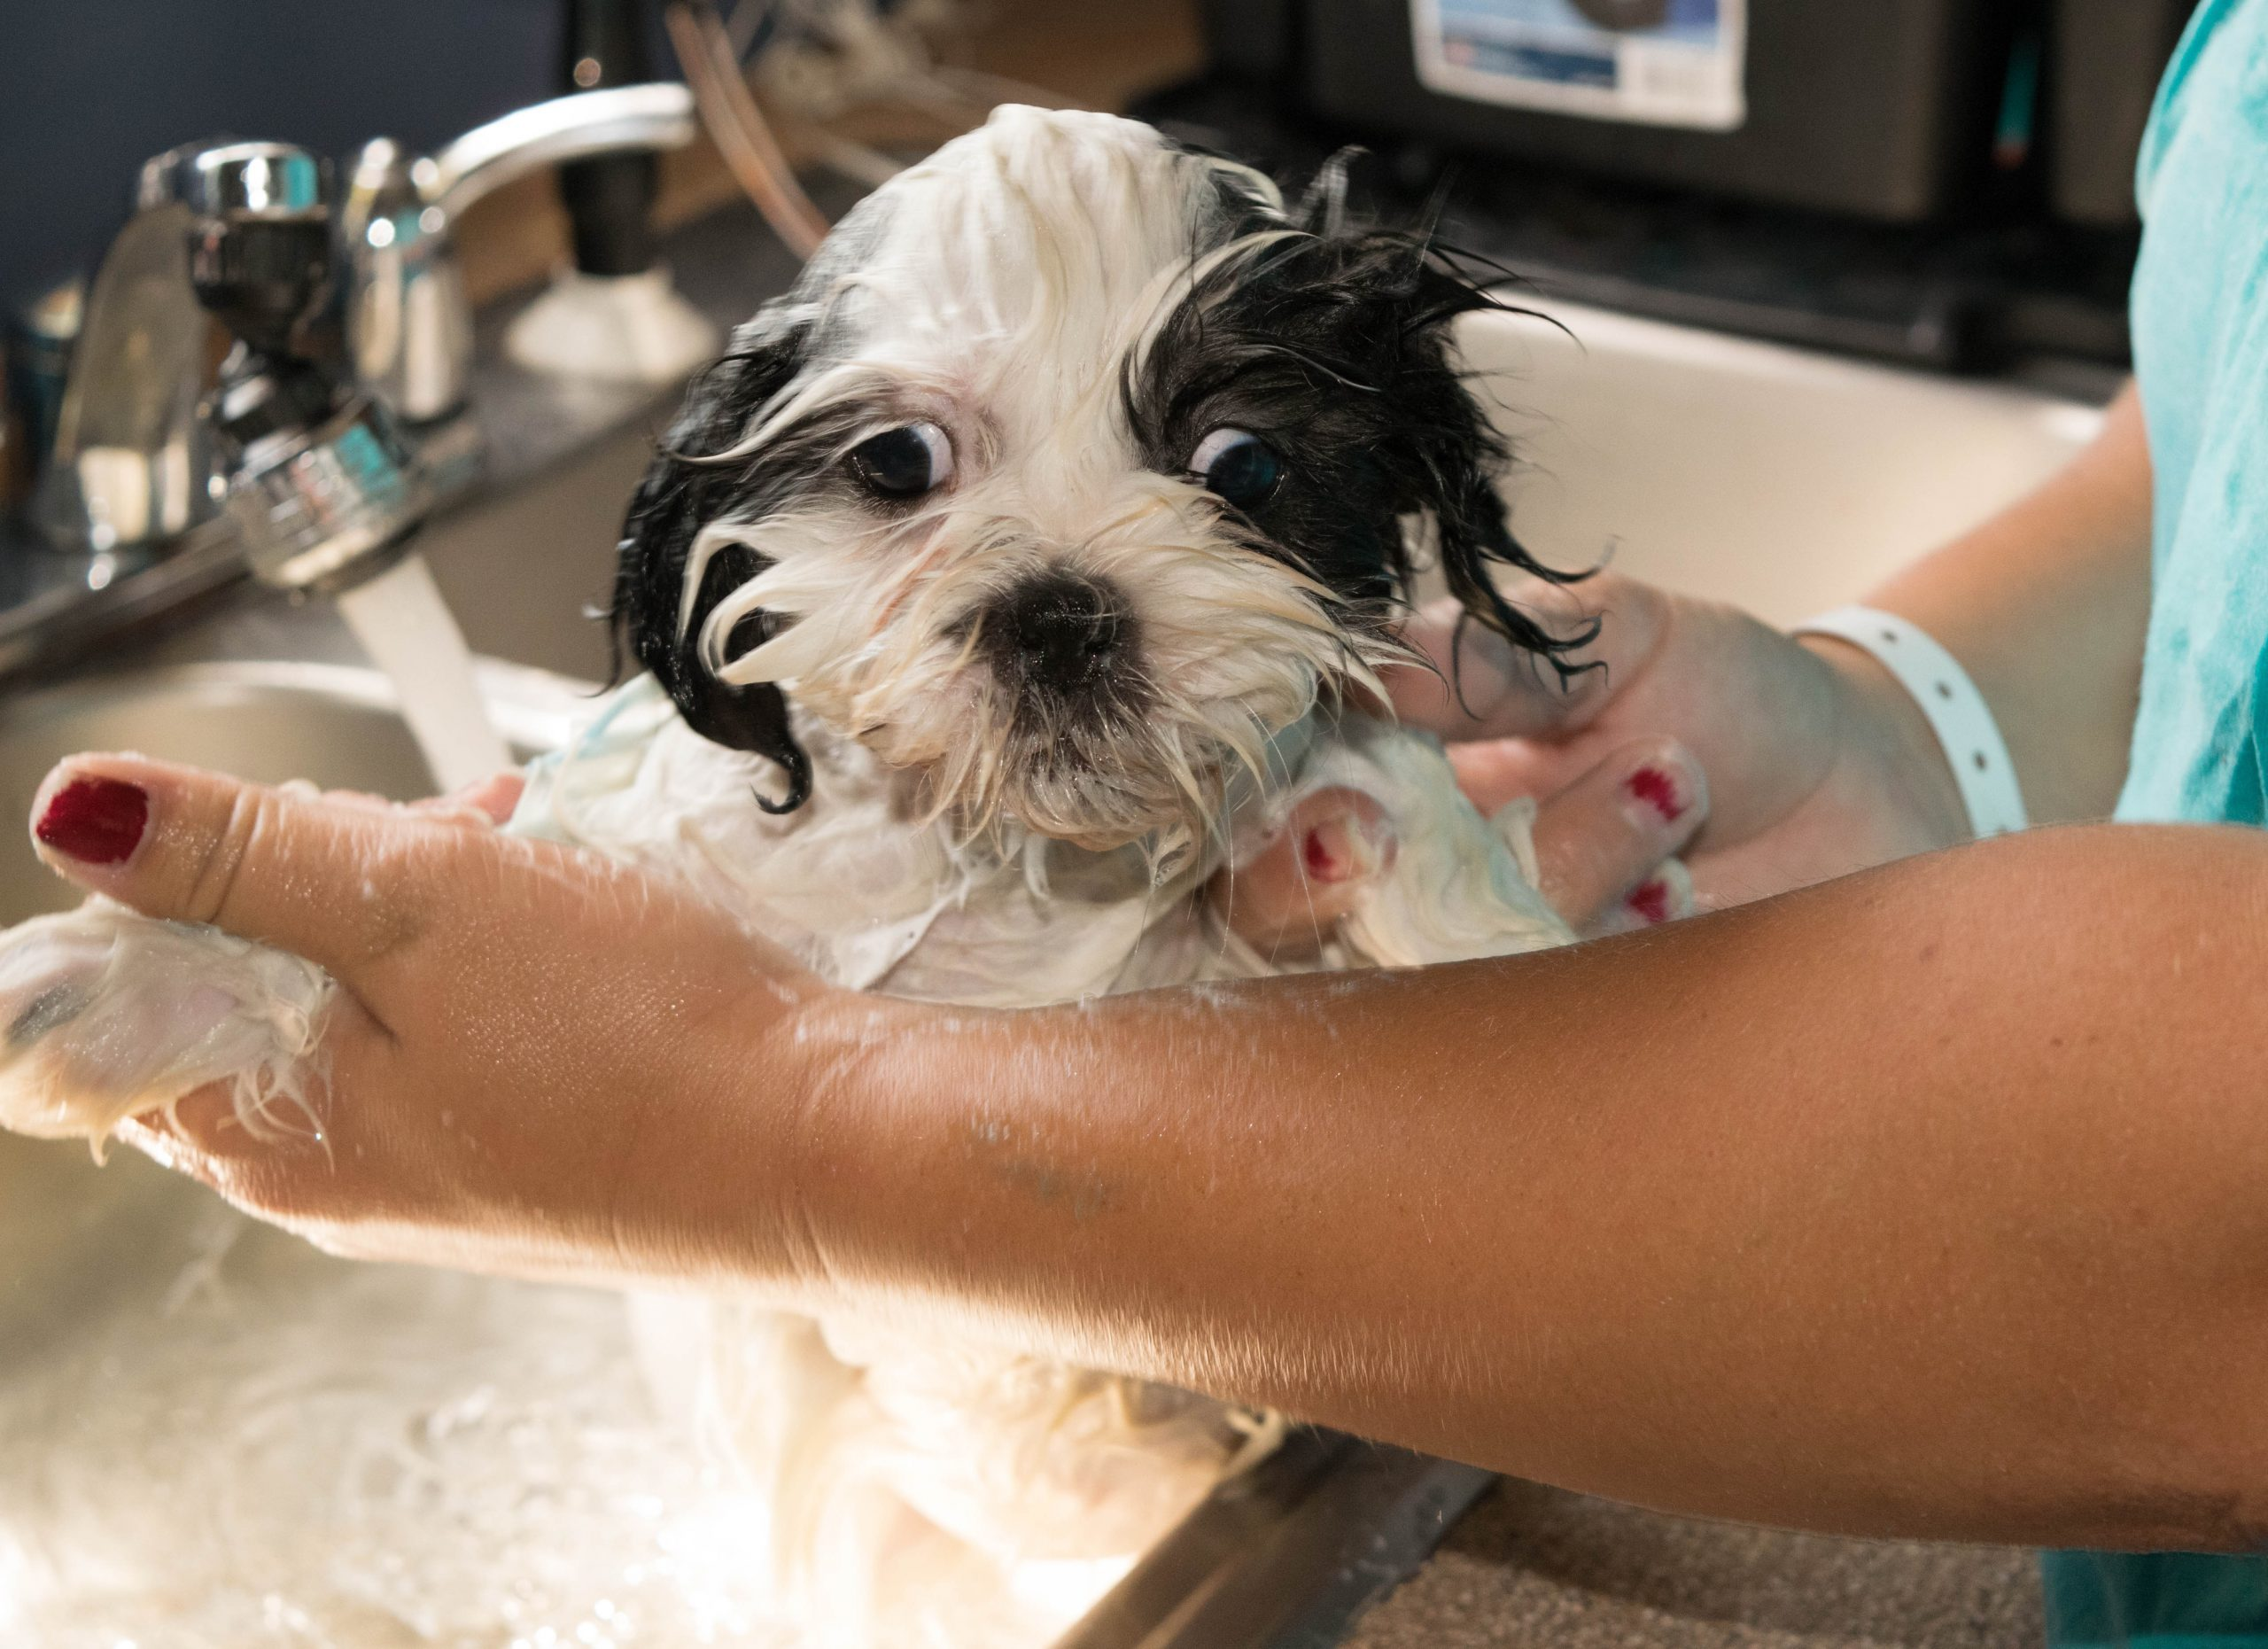 Midsection Of Woman Bathing Shih Tzu Puppy In Sink At Home